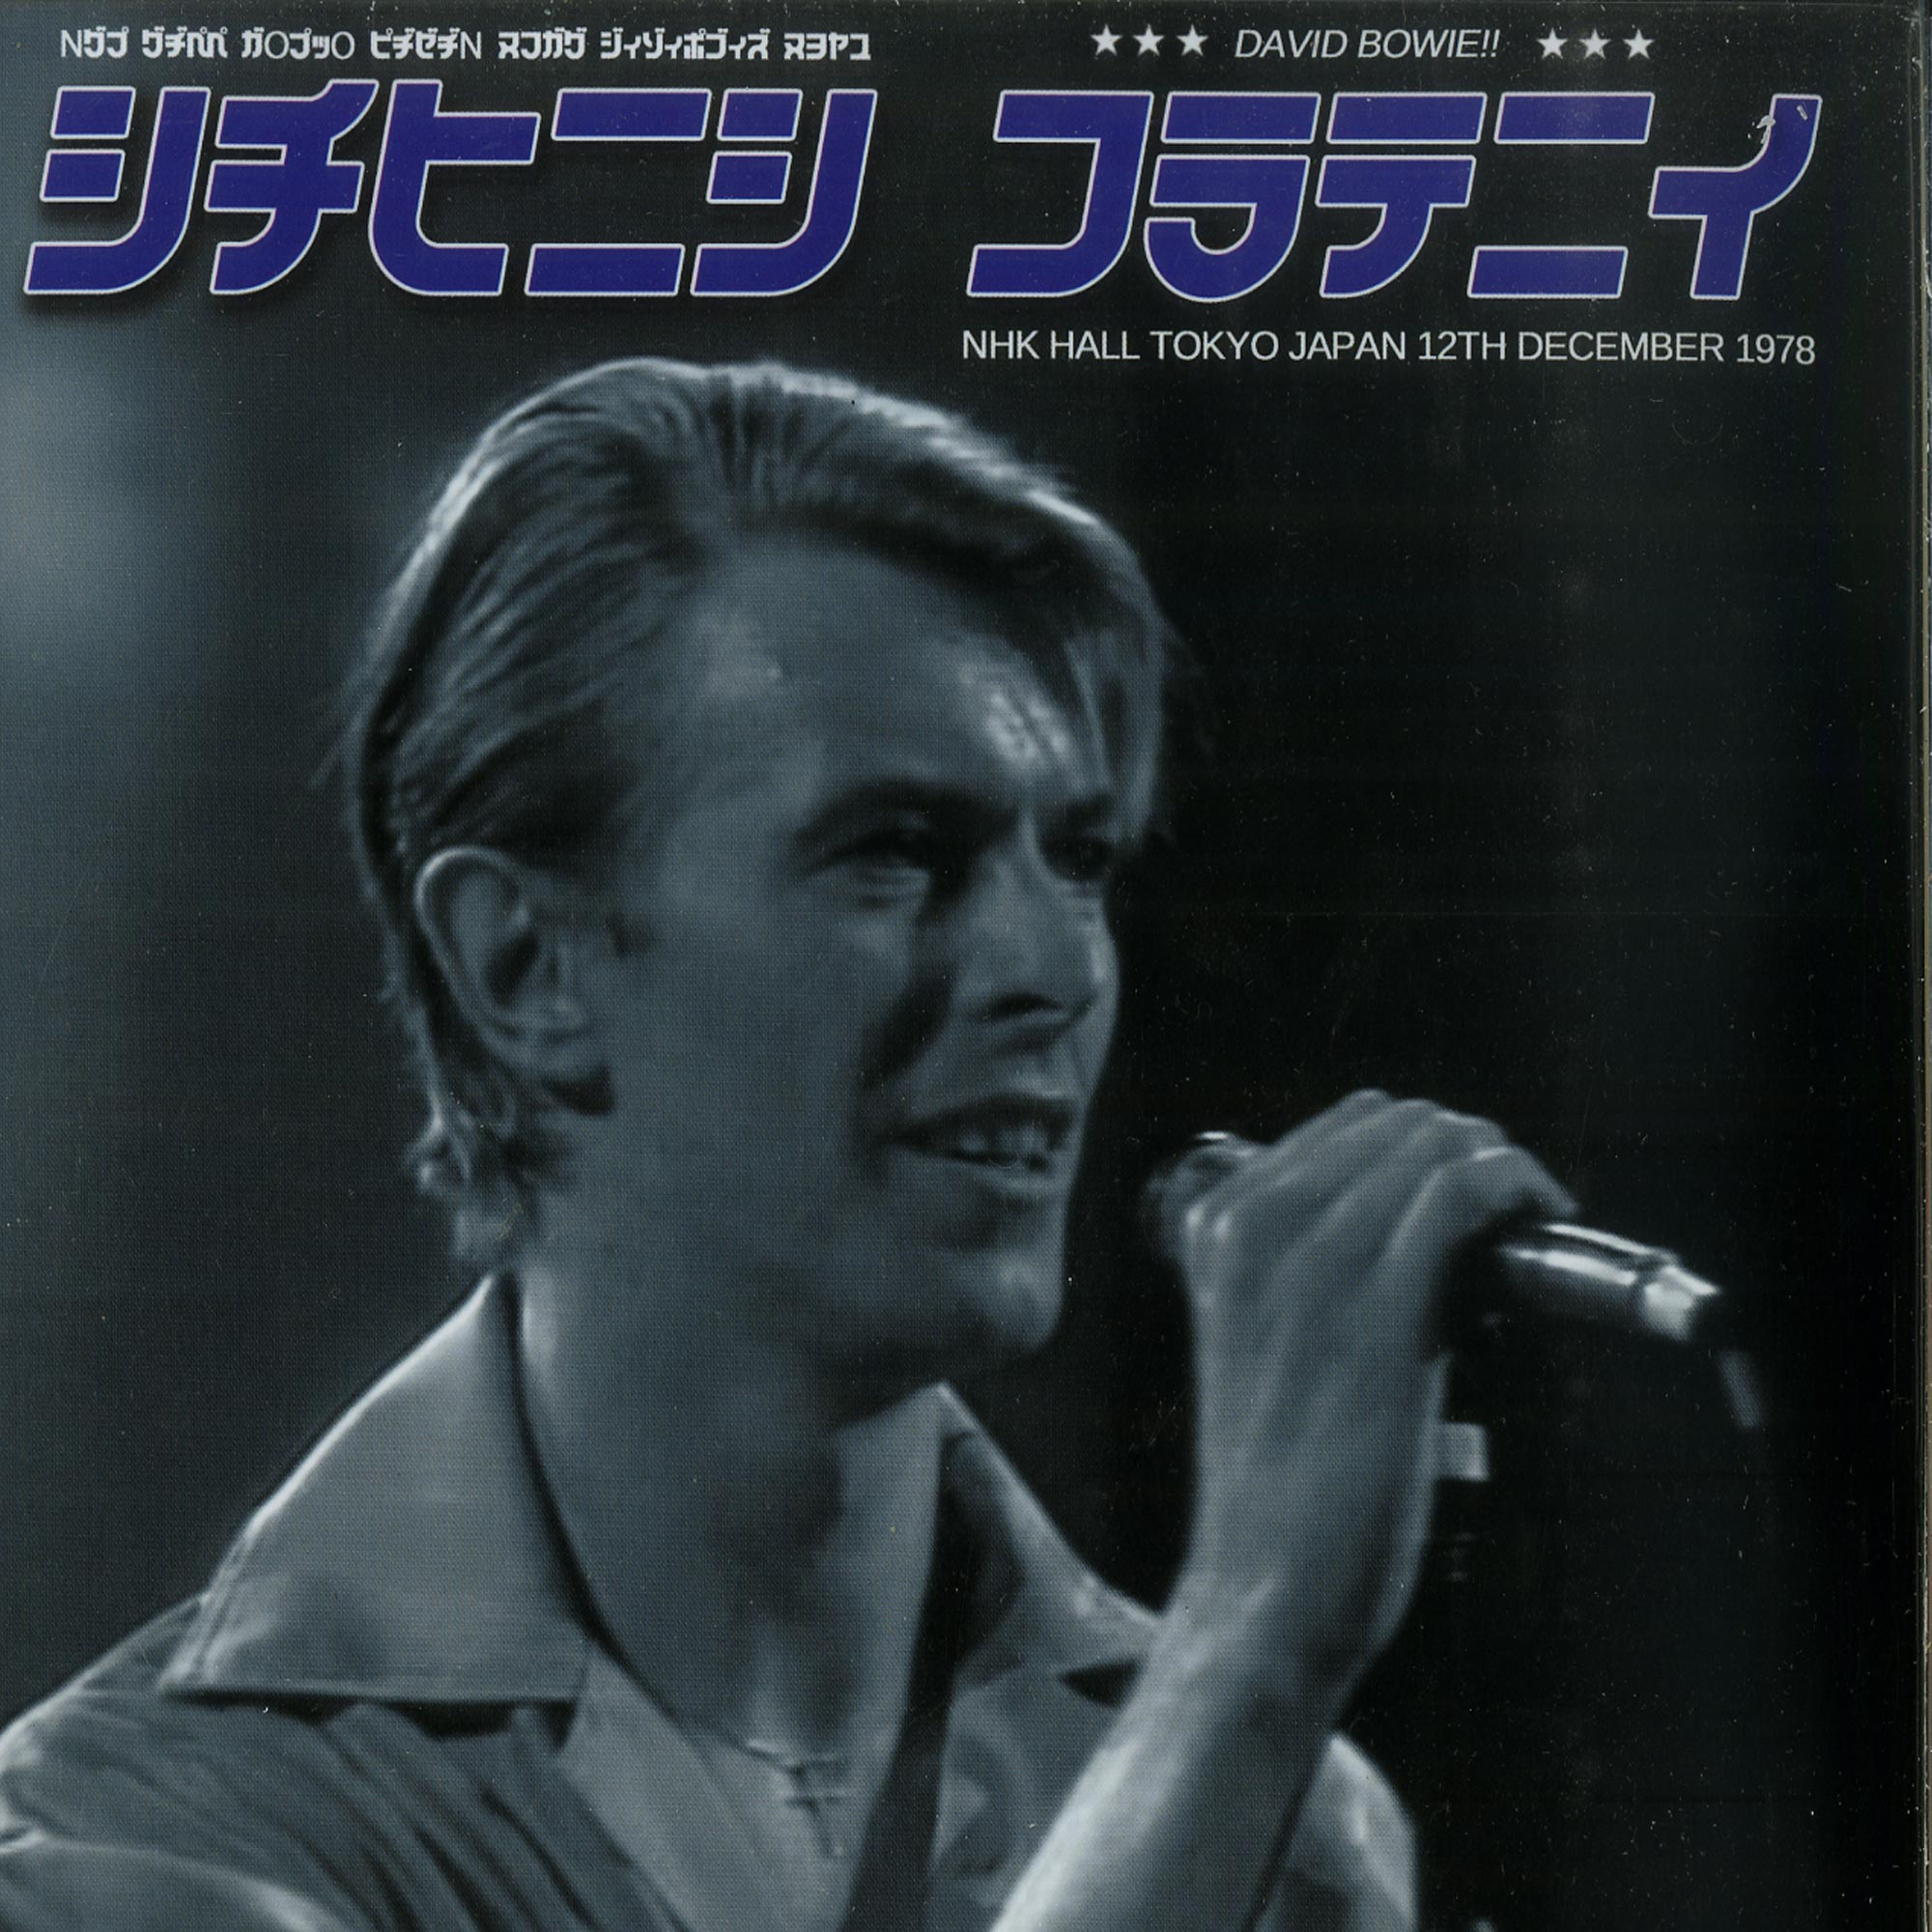 David Bowie - THE TOKYO EP